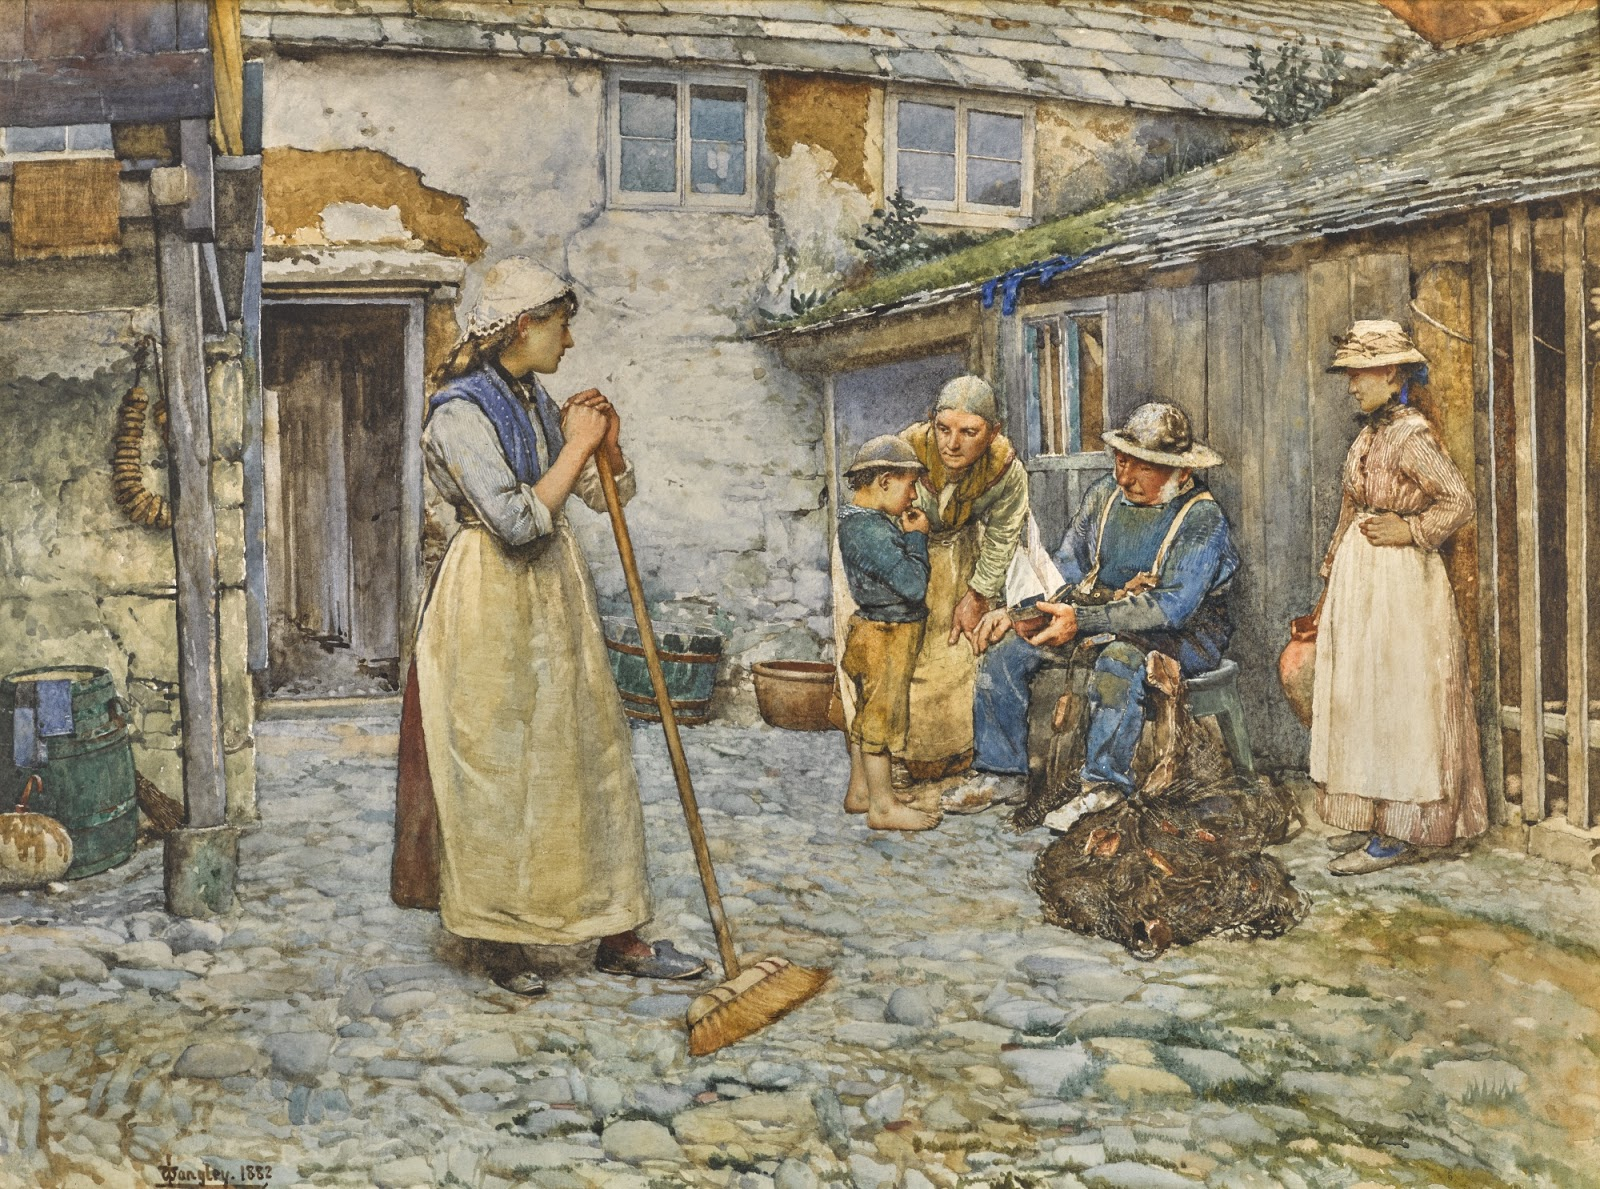 Walter Langley An authority